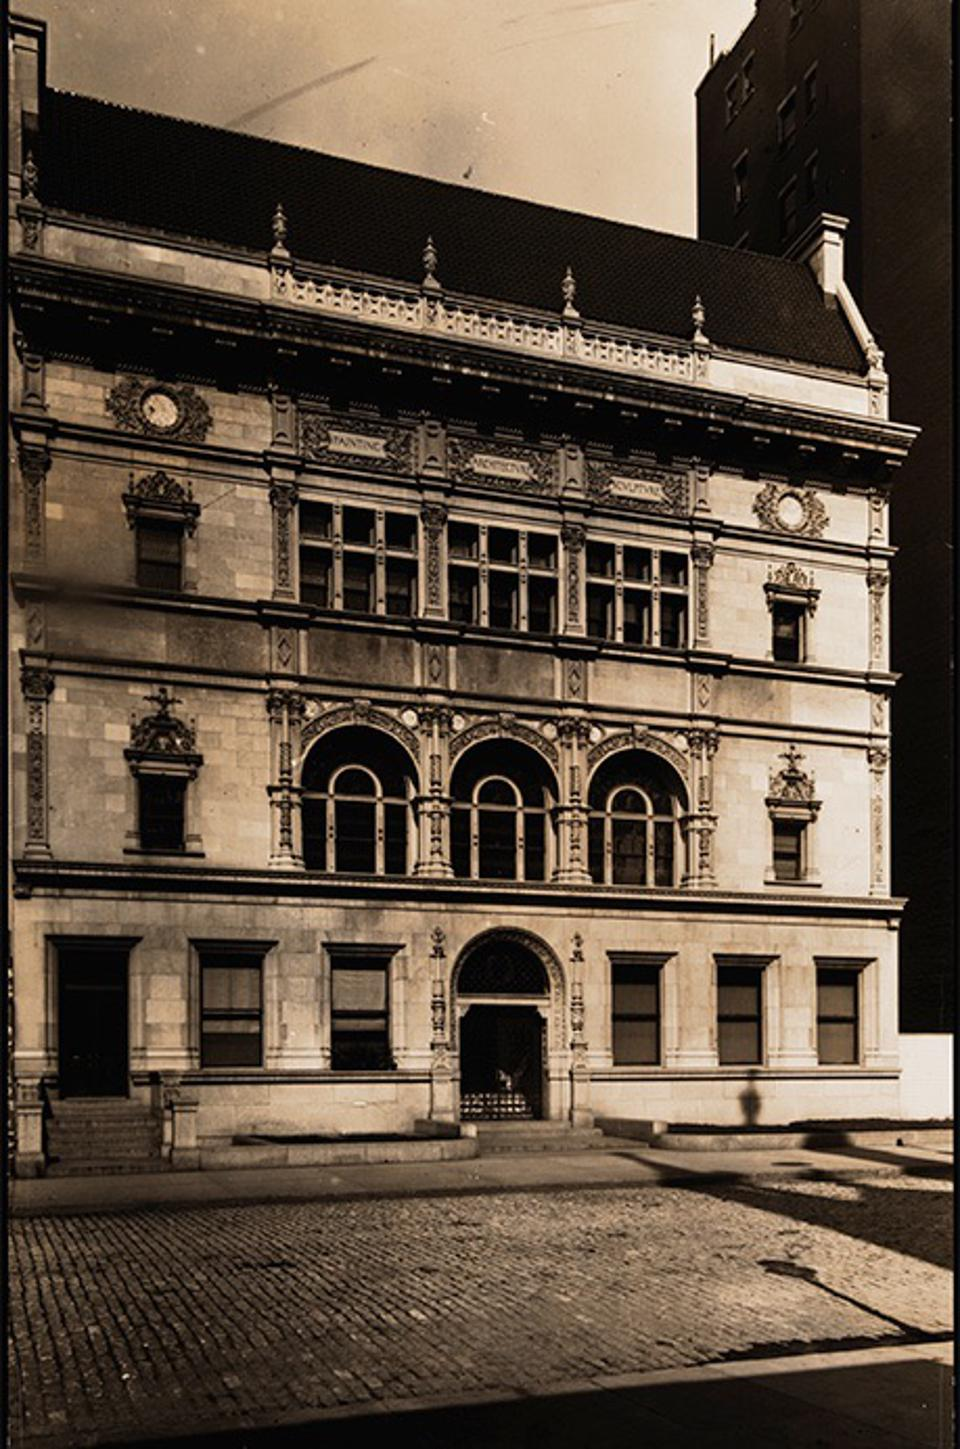 One of the earliest surviving images of the Art Students League of New York, built 1892.